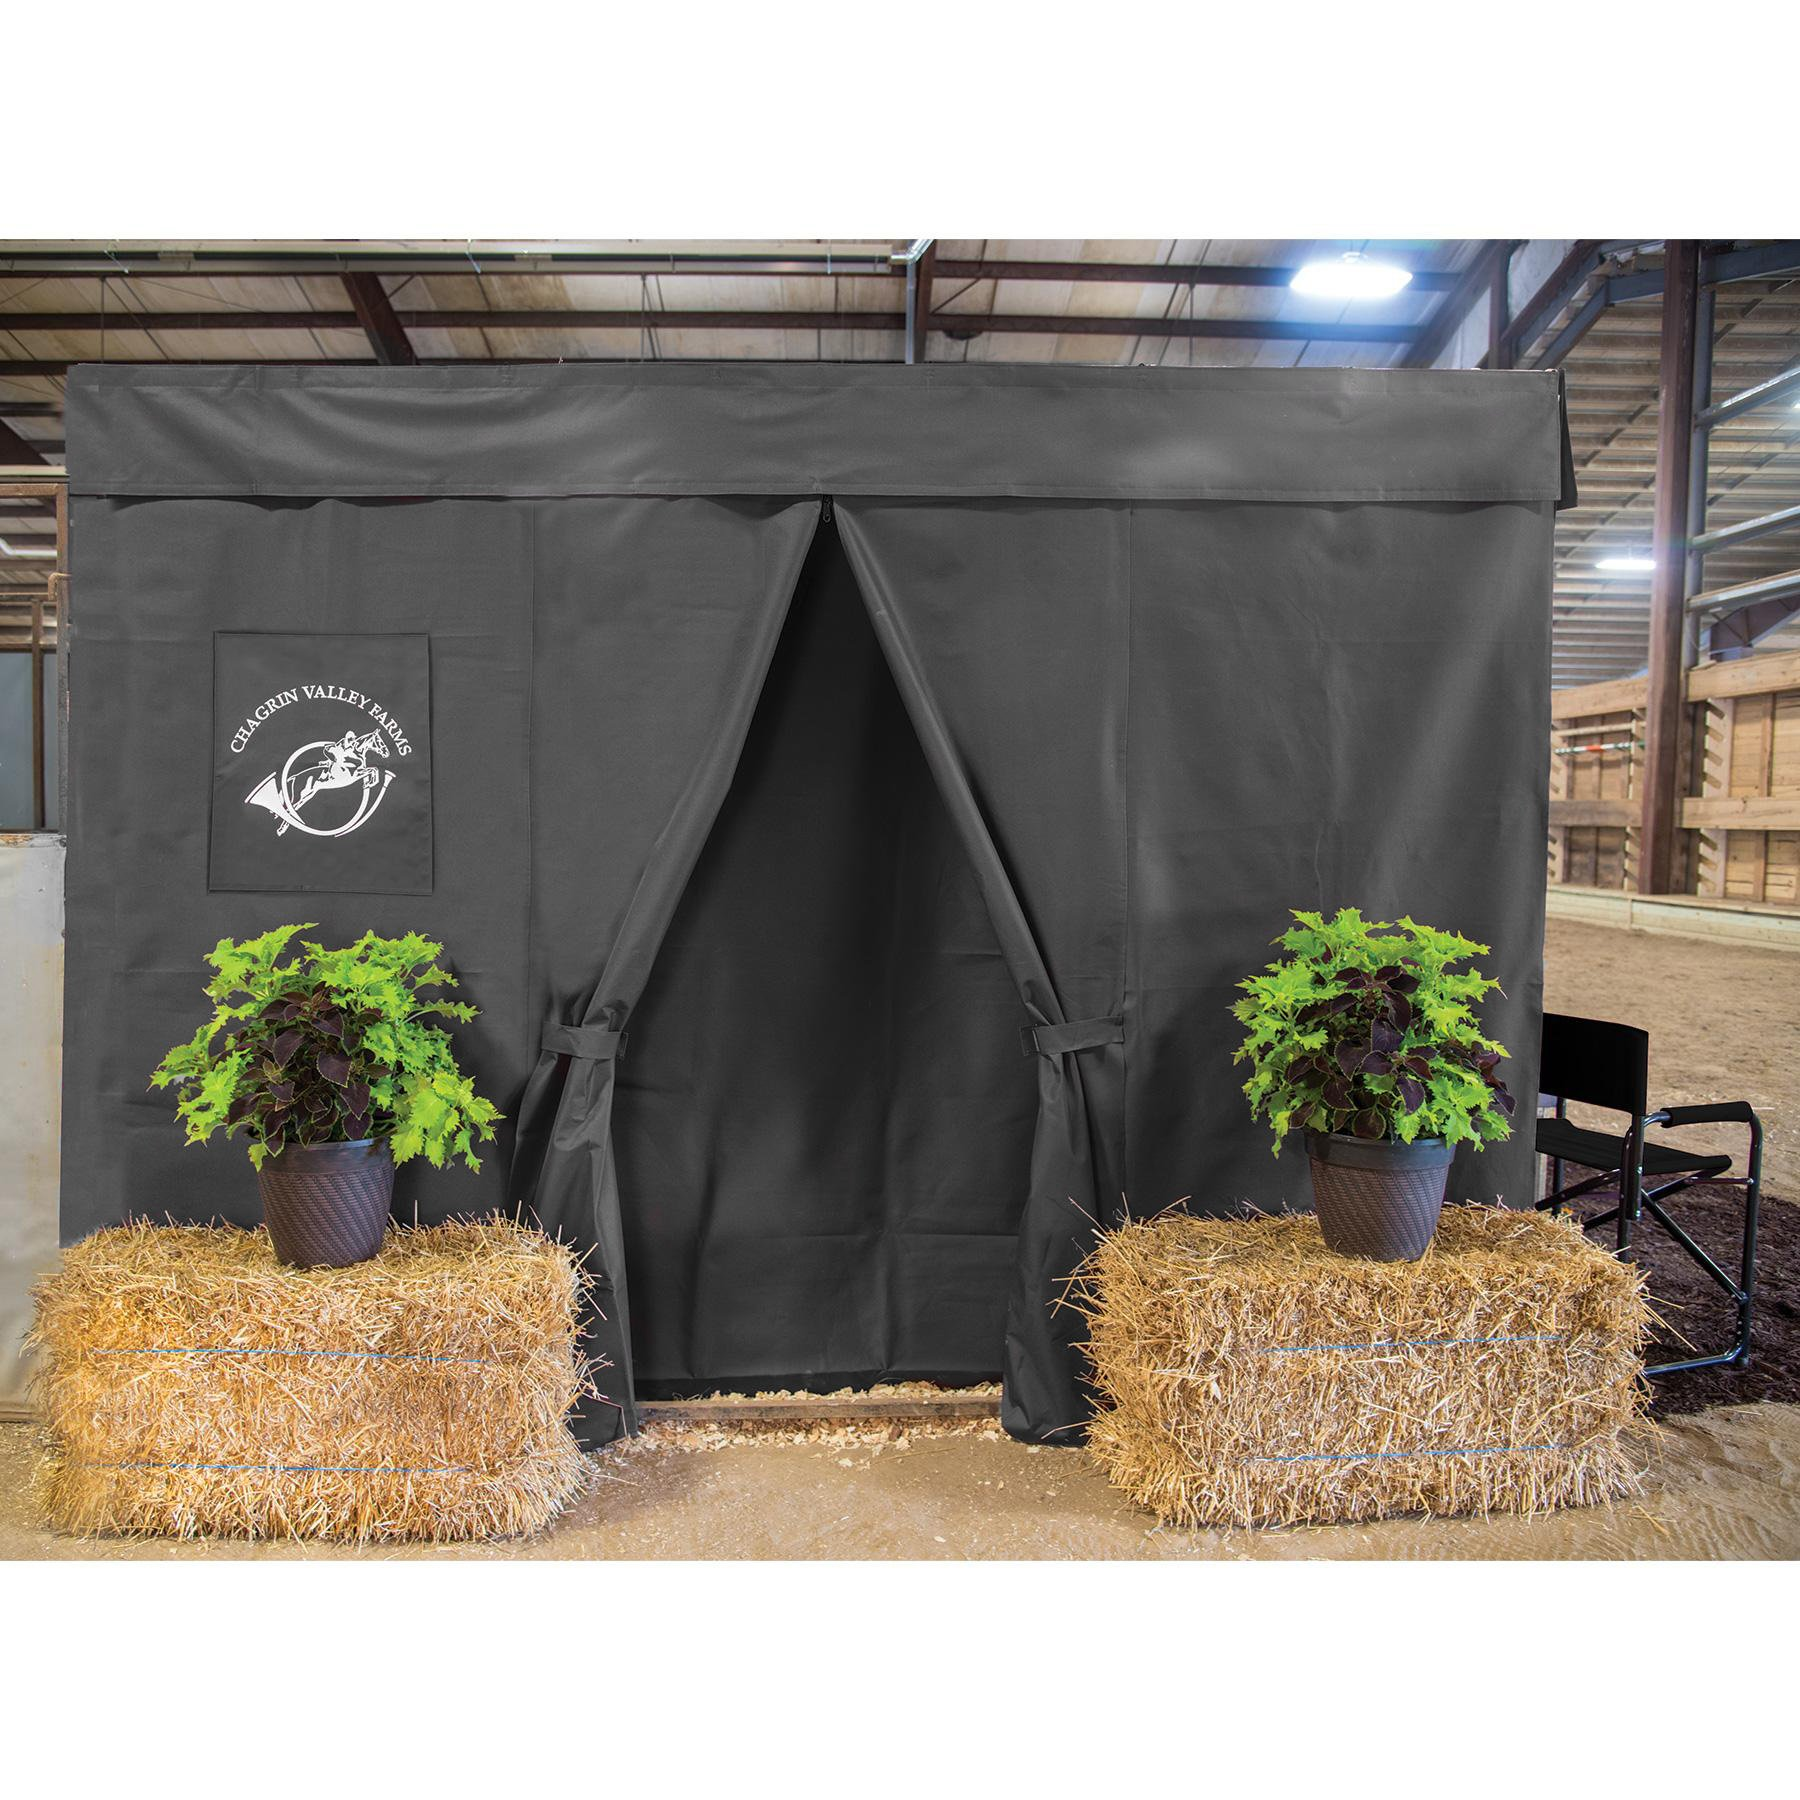 Dura-Tech Six Piece Horse Stall Front Drape Package, Heavy Duty Show Stall, Professional Appearance with Easy Set-Up and Flexible Entry Placement (Black) by Dura-Tech